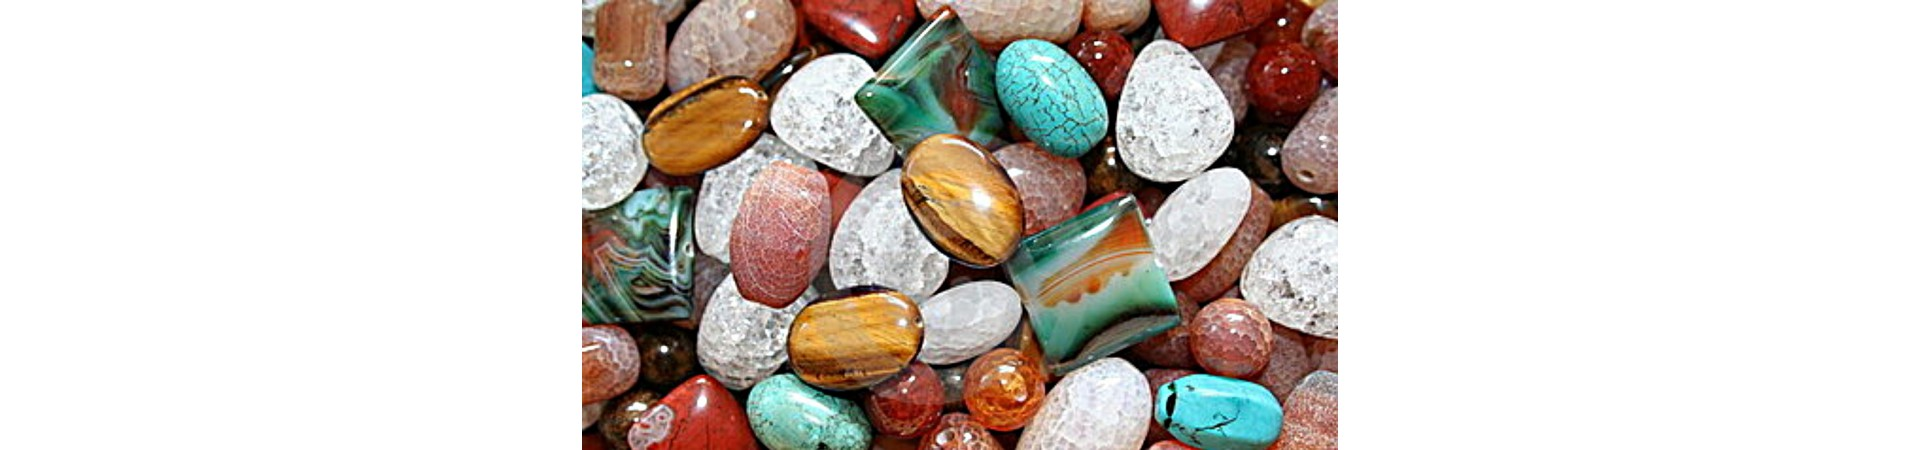 Natural Stones for Jewelry